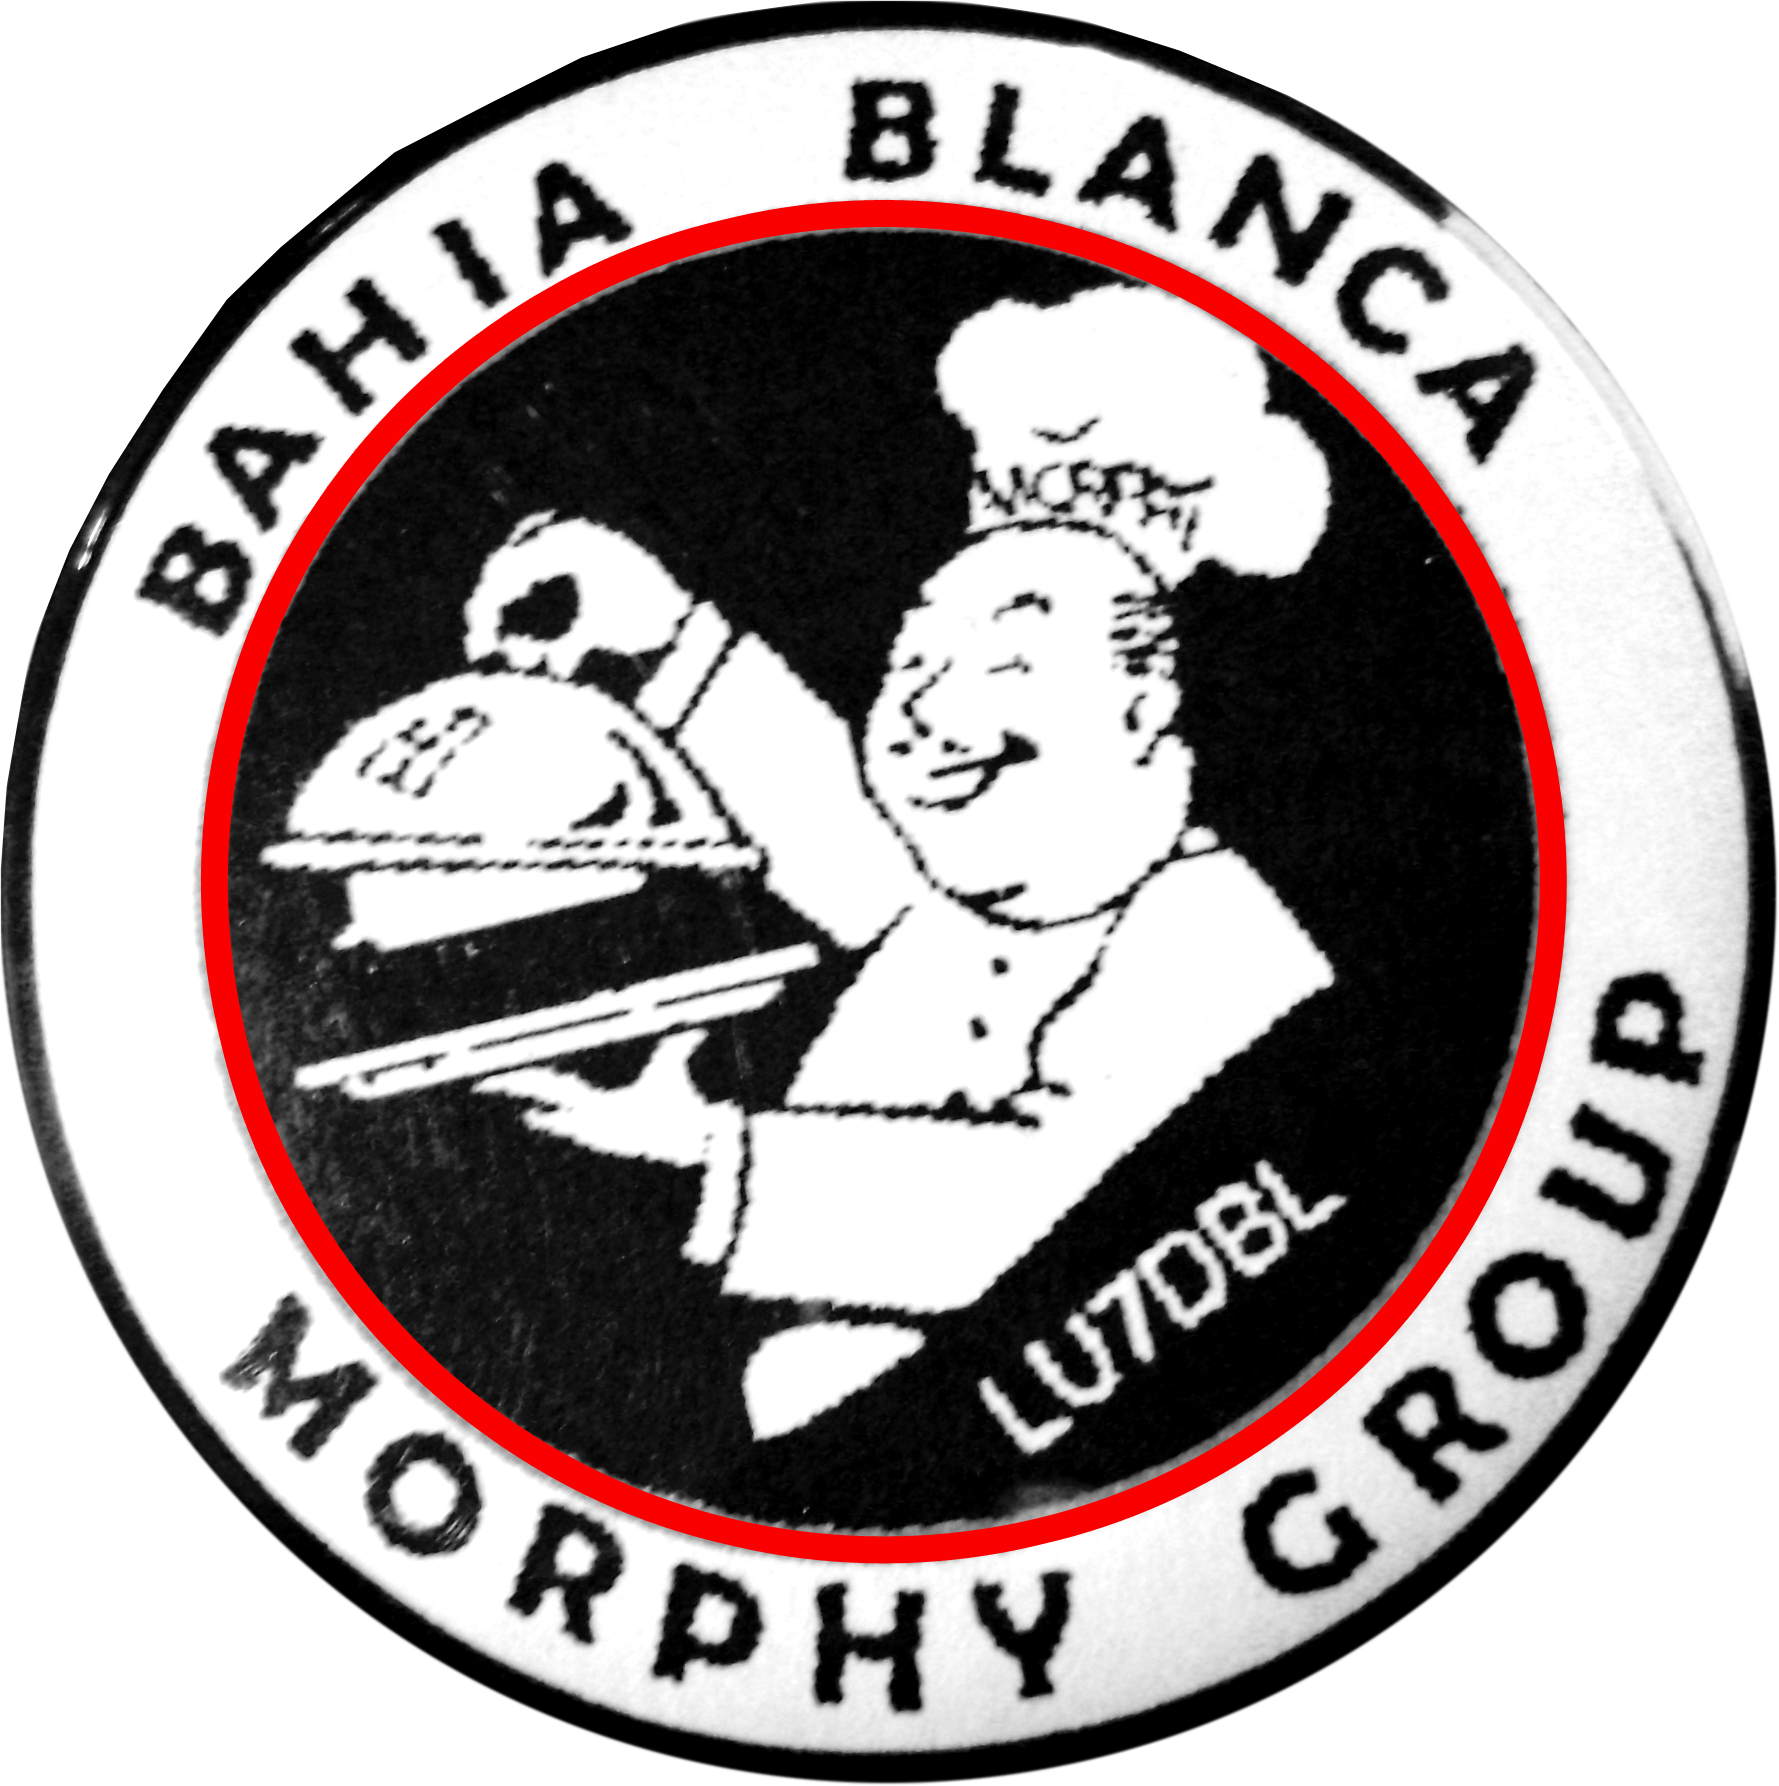 MORPHY GROUP